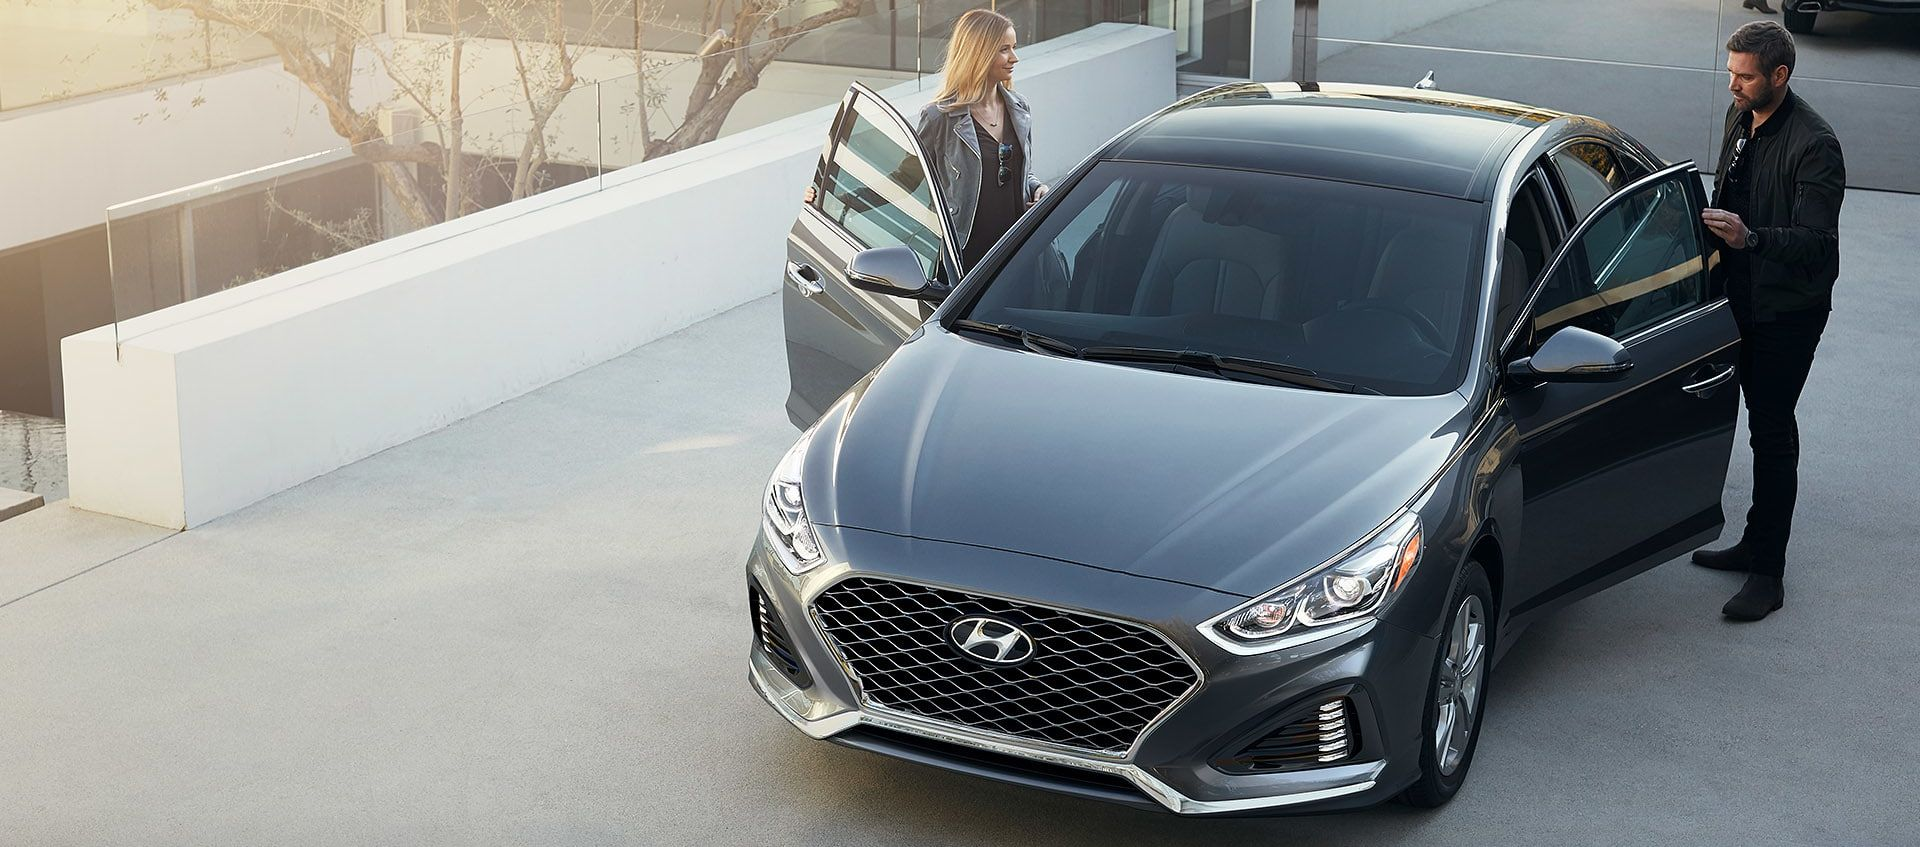 Used Hyundai Sonata for Sale near Stafford, VA